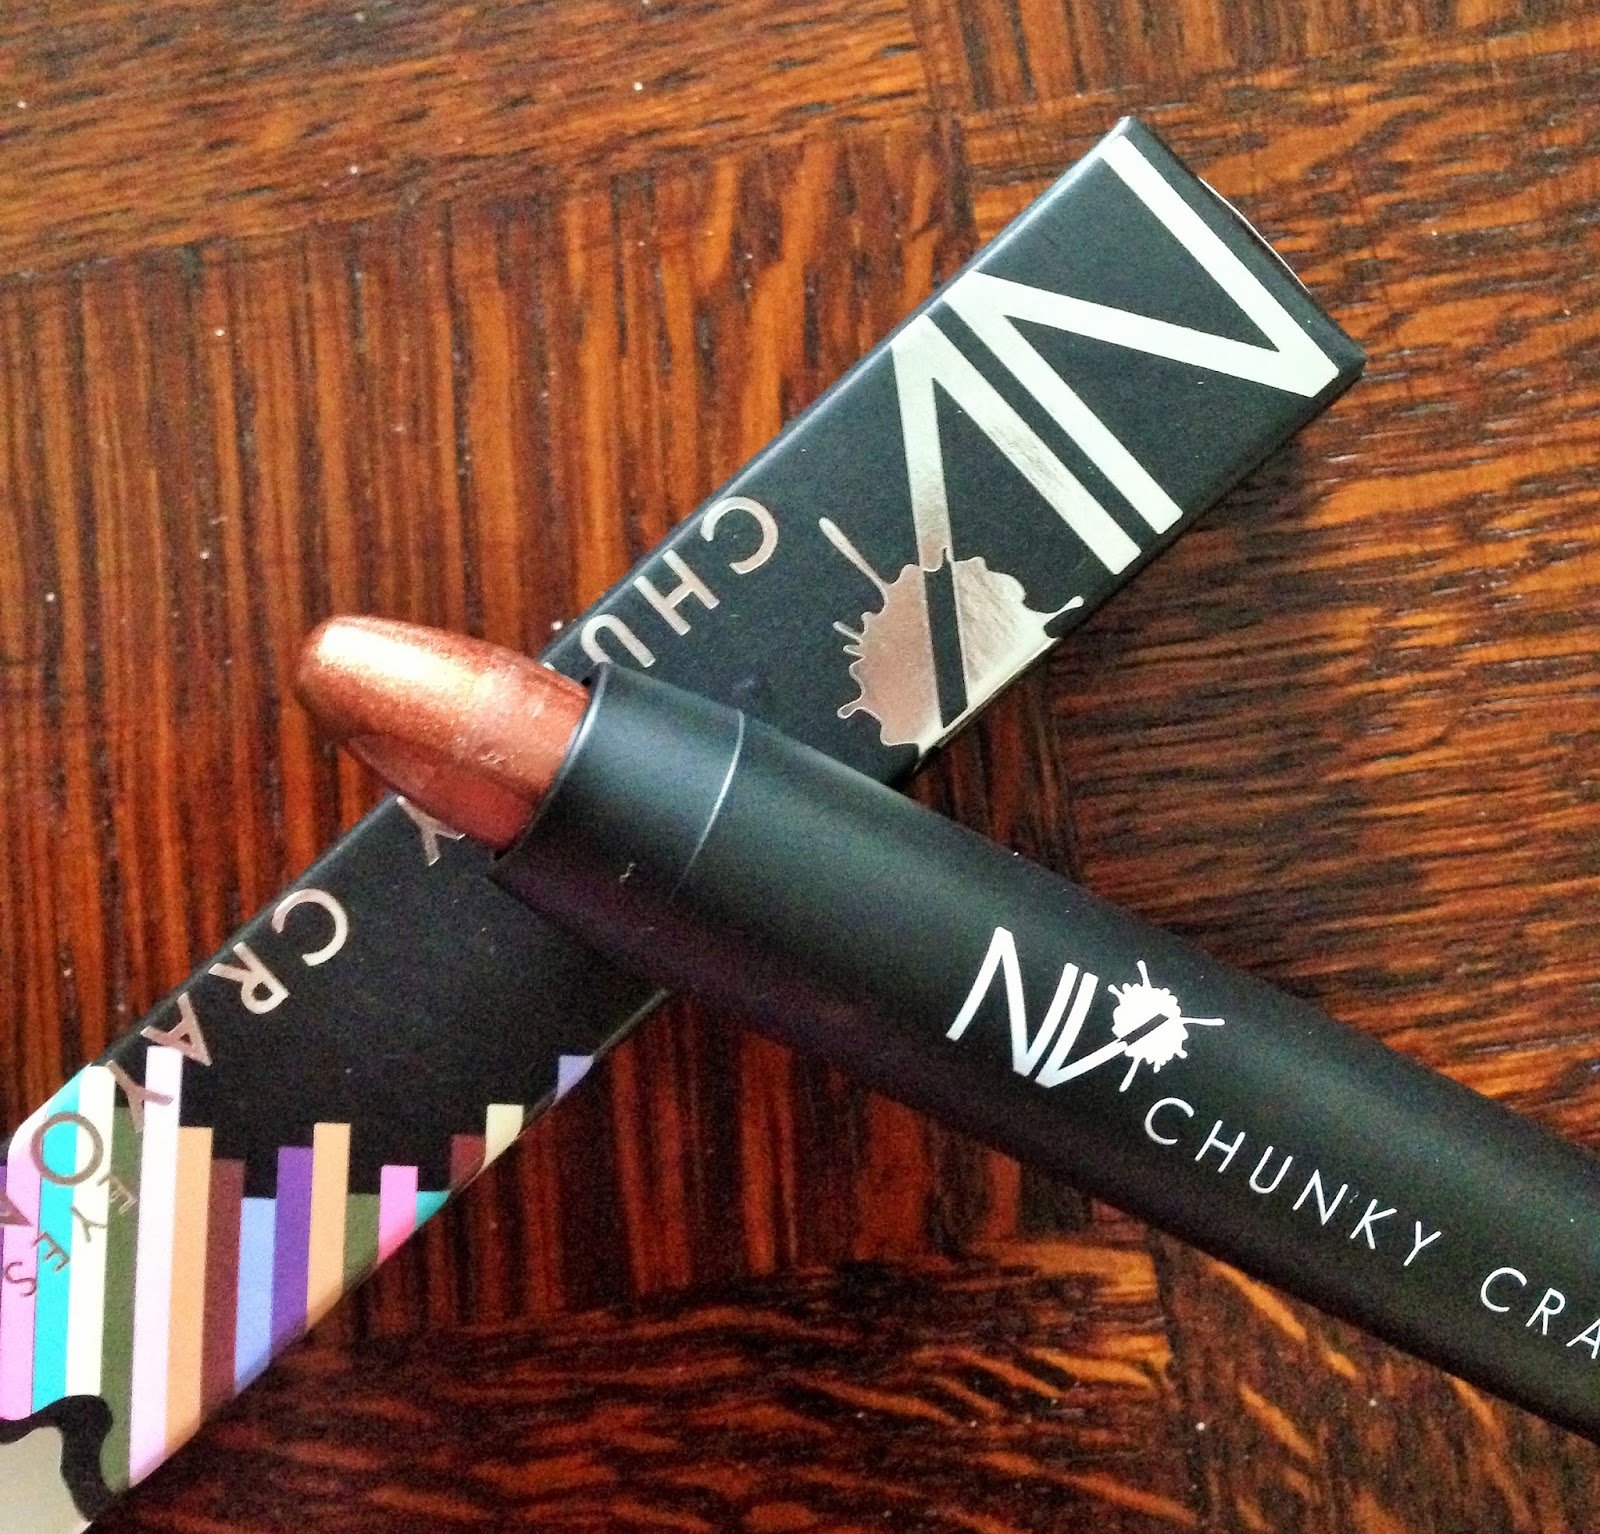 NV Colour Cosmetics Chunky Eye Pencil in Cinnamon Review Swatch